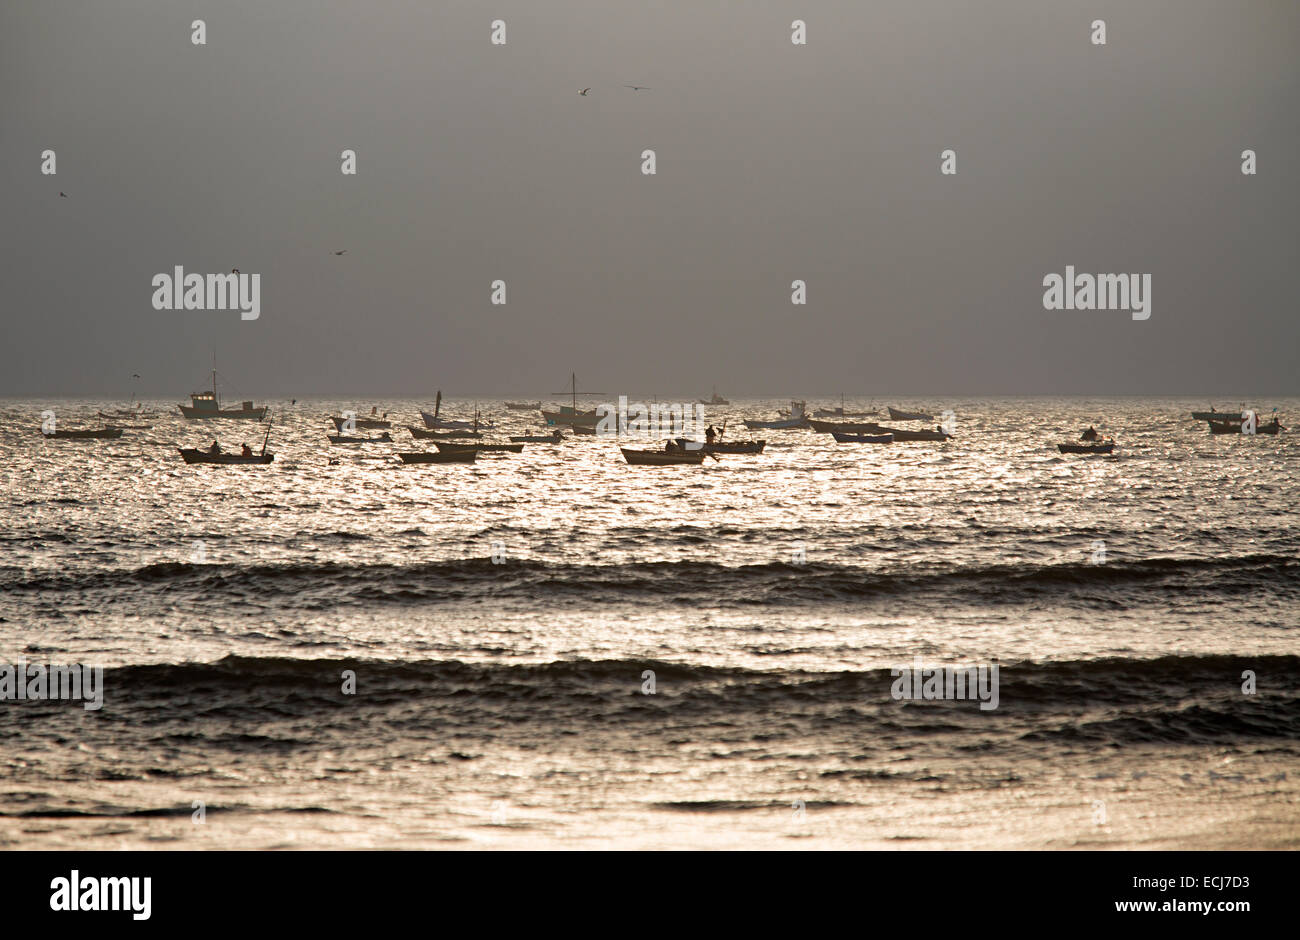 Cluster of fishing boats in dramatic light. - Stock Image